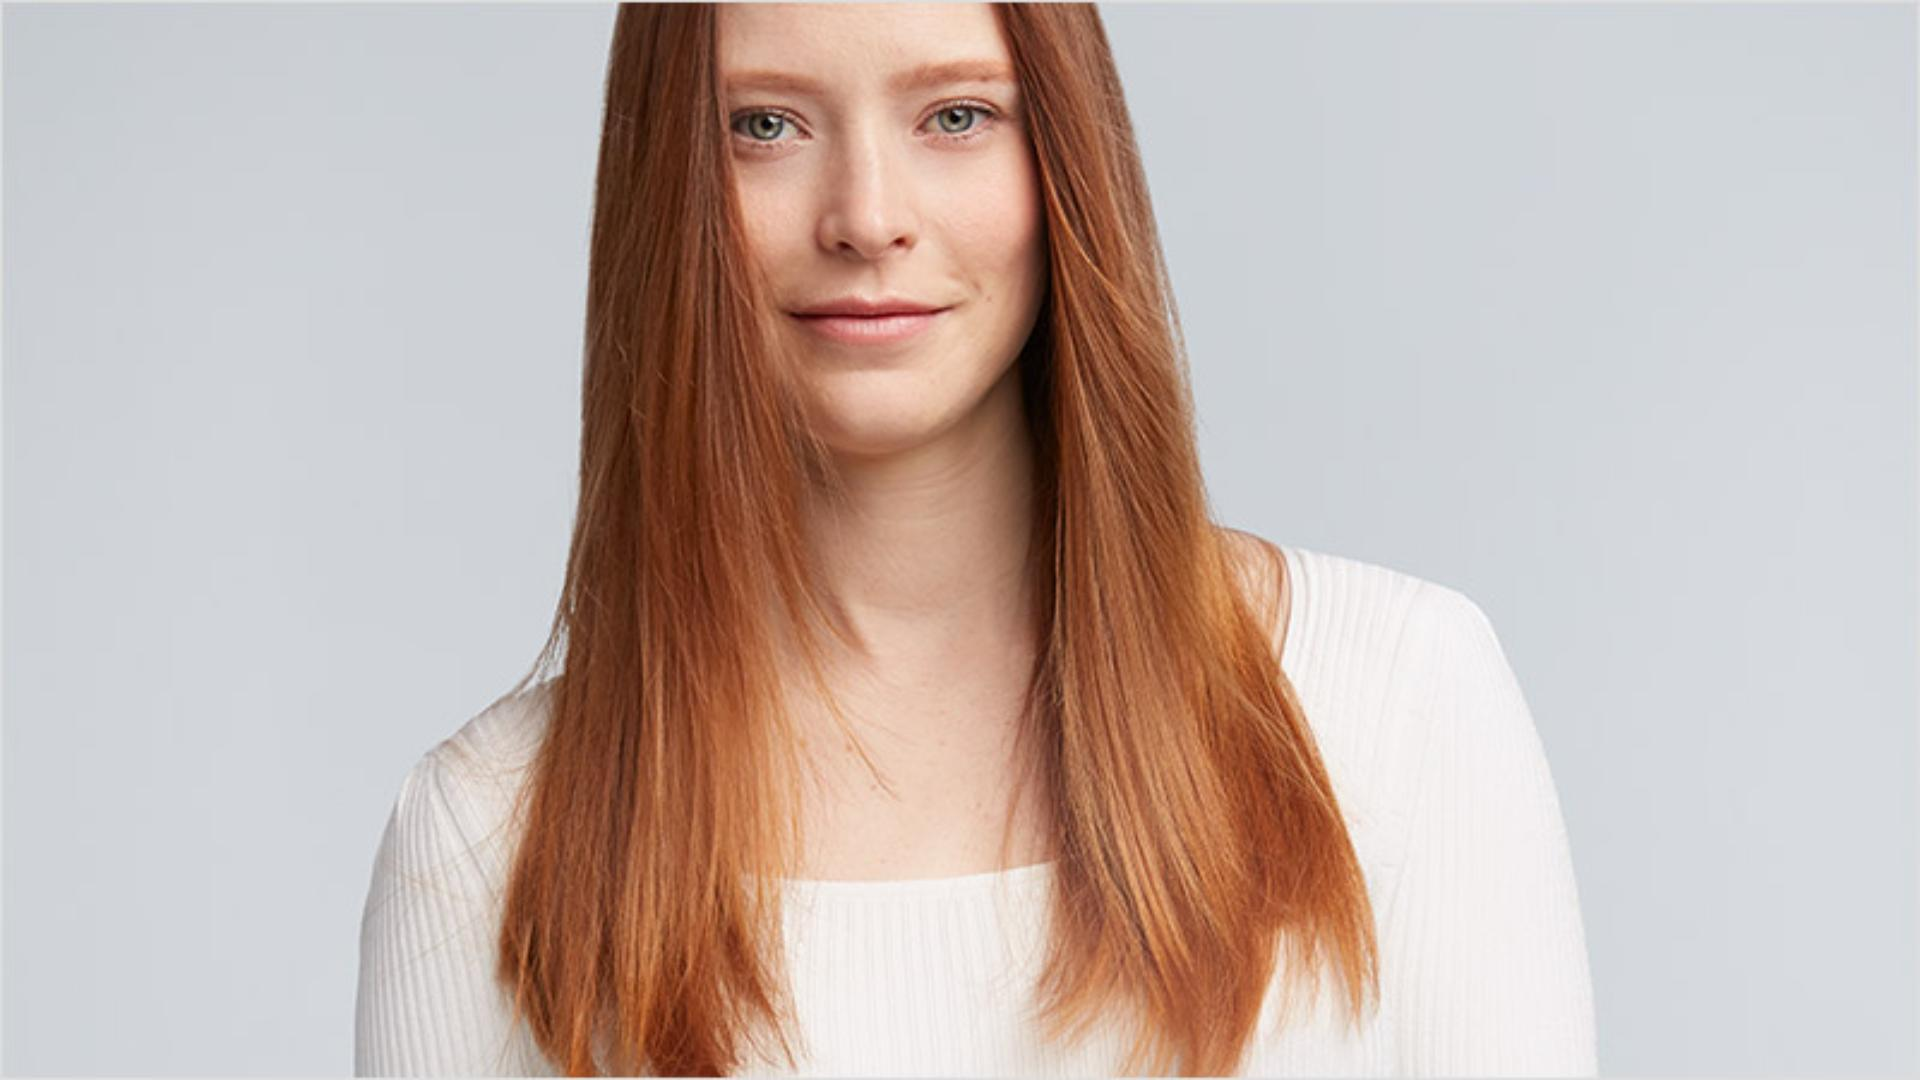 Model with silky, straight hair